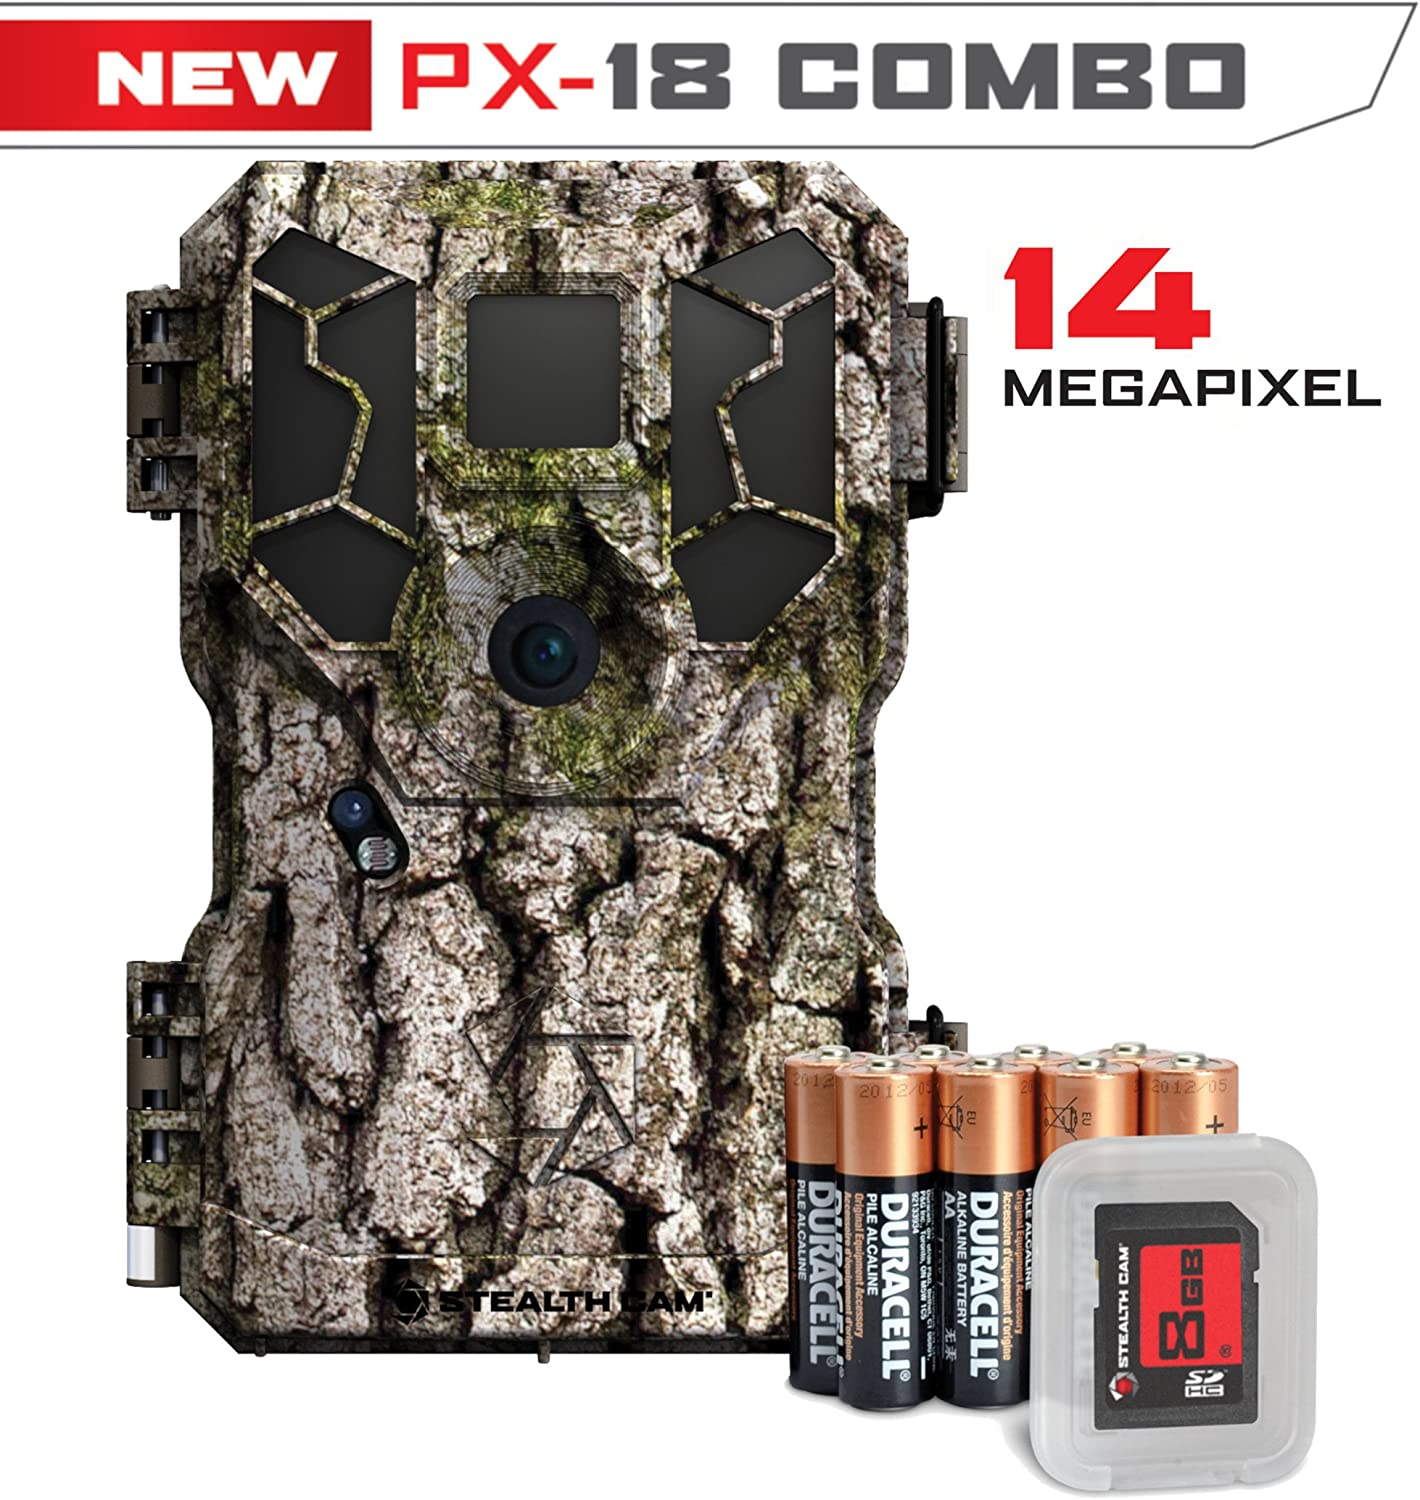 Stealth Cam Px18 Superlatite FX Scouting 8mp Kit Tree Combo Max 68% OFF Gam Bark Hunting